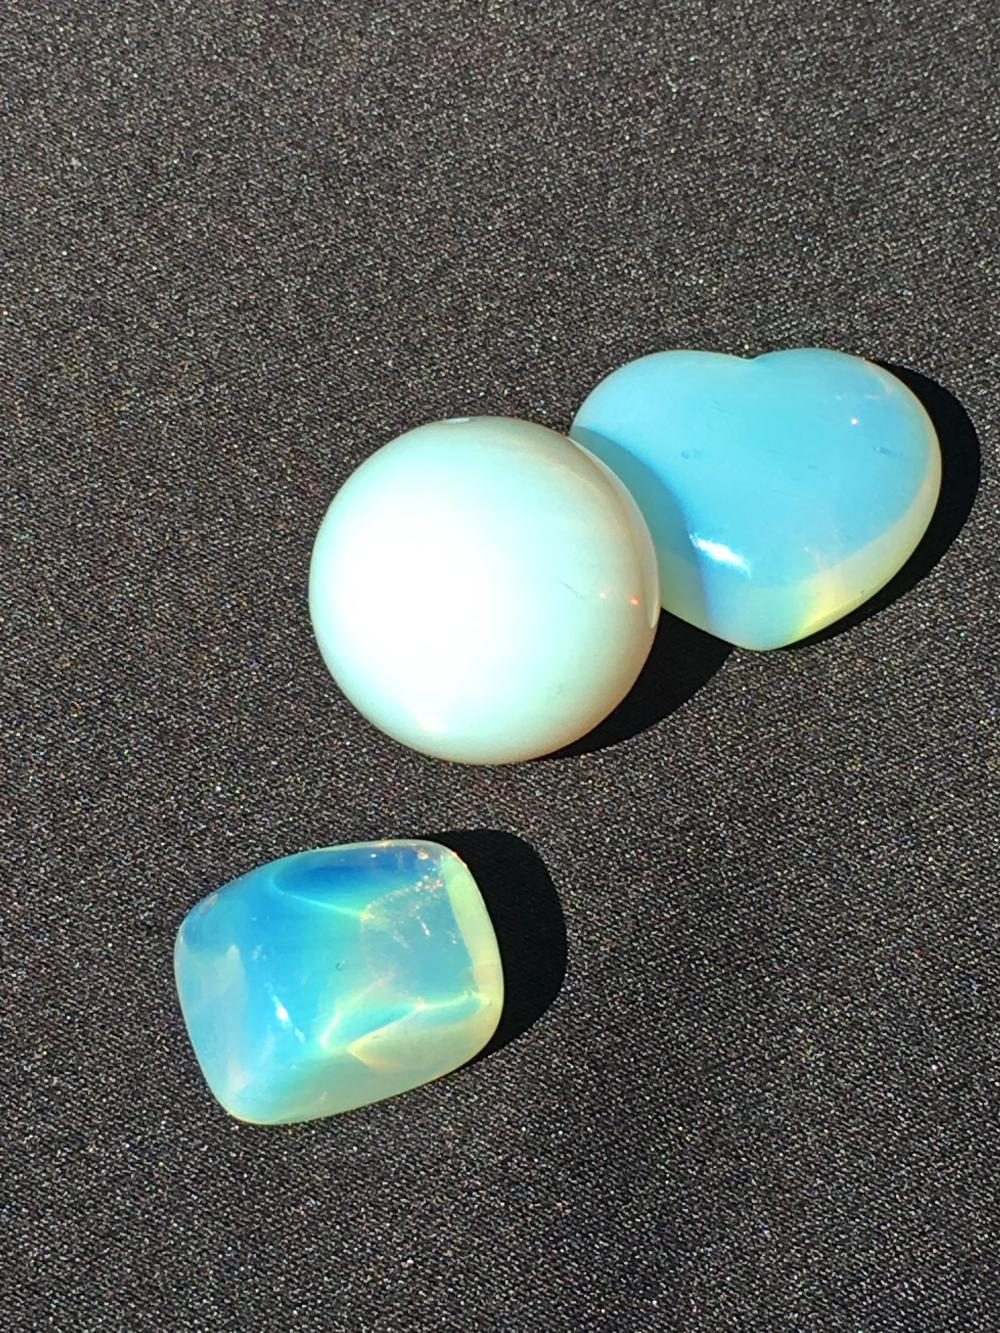 Lot 176: Opalite, Glass, Natural, Collectible, Carving, Heart, Sphere